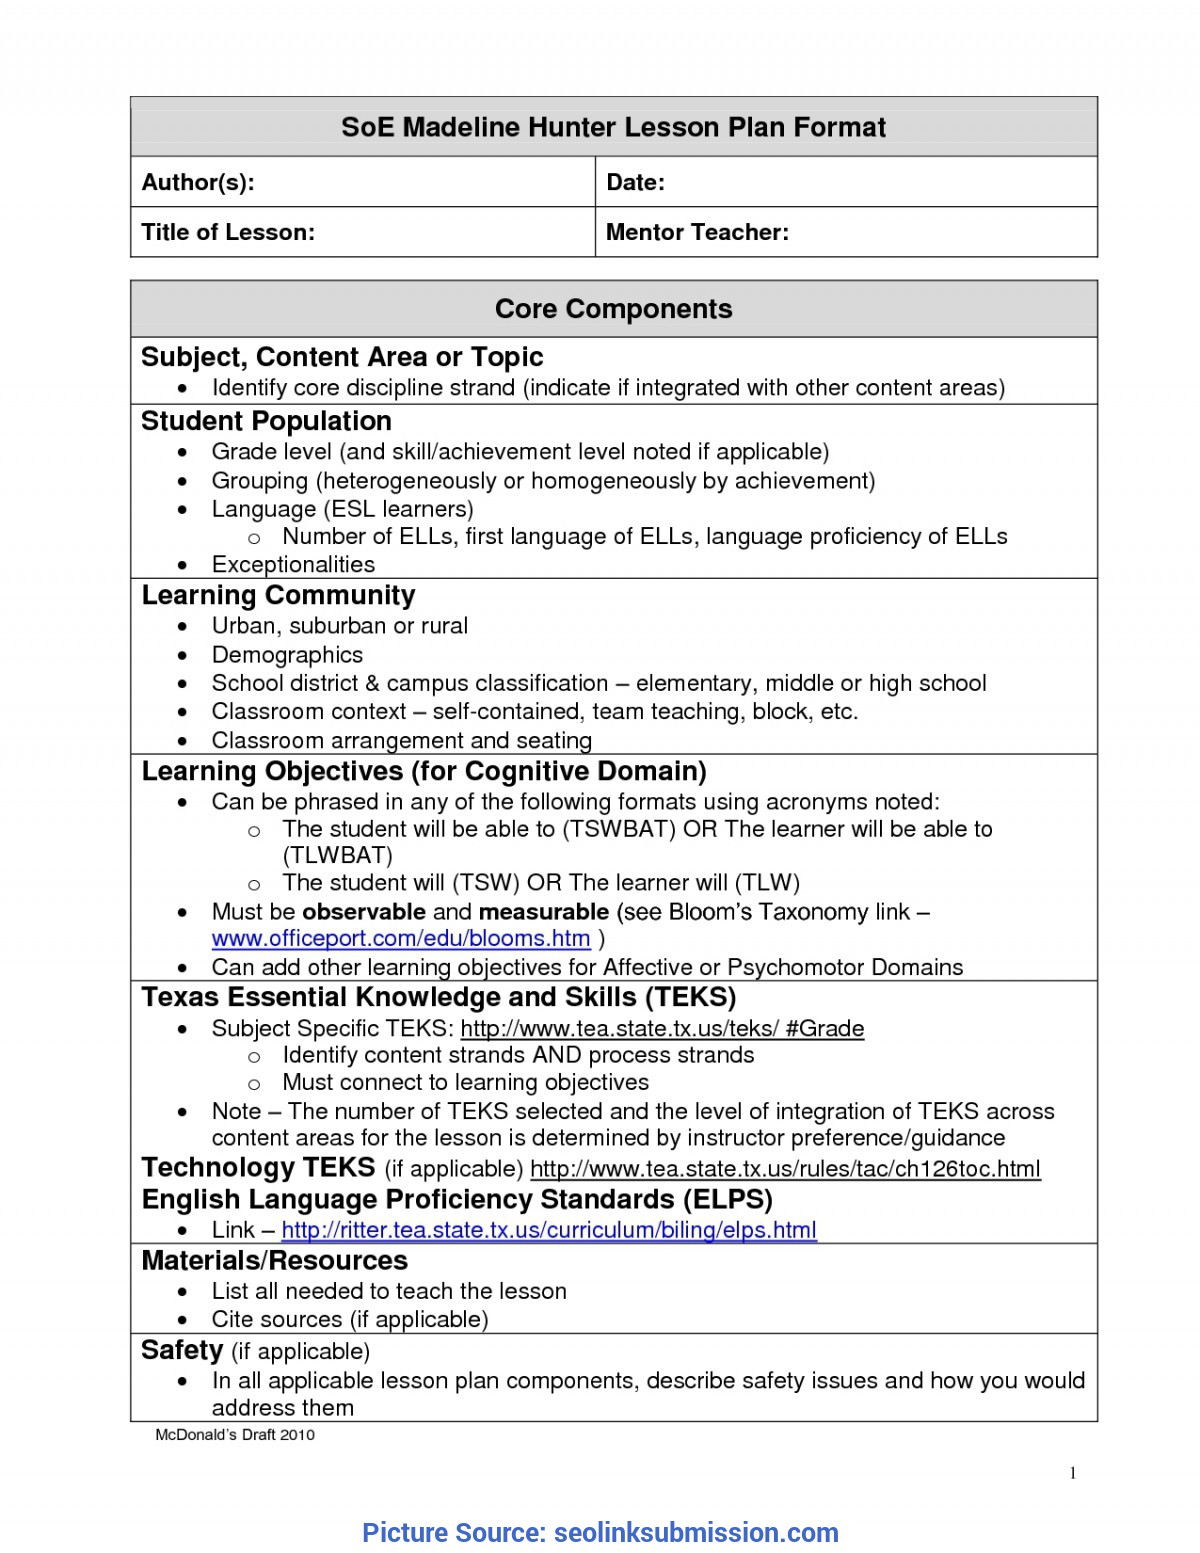 Unusual A Modern Version Of Madeline Hunter Lesson Plan Template